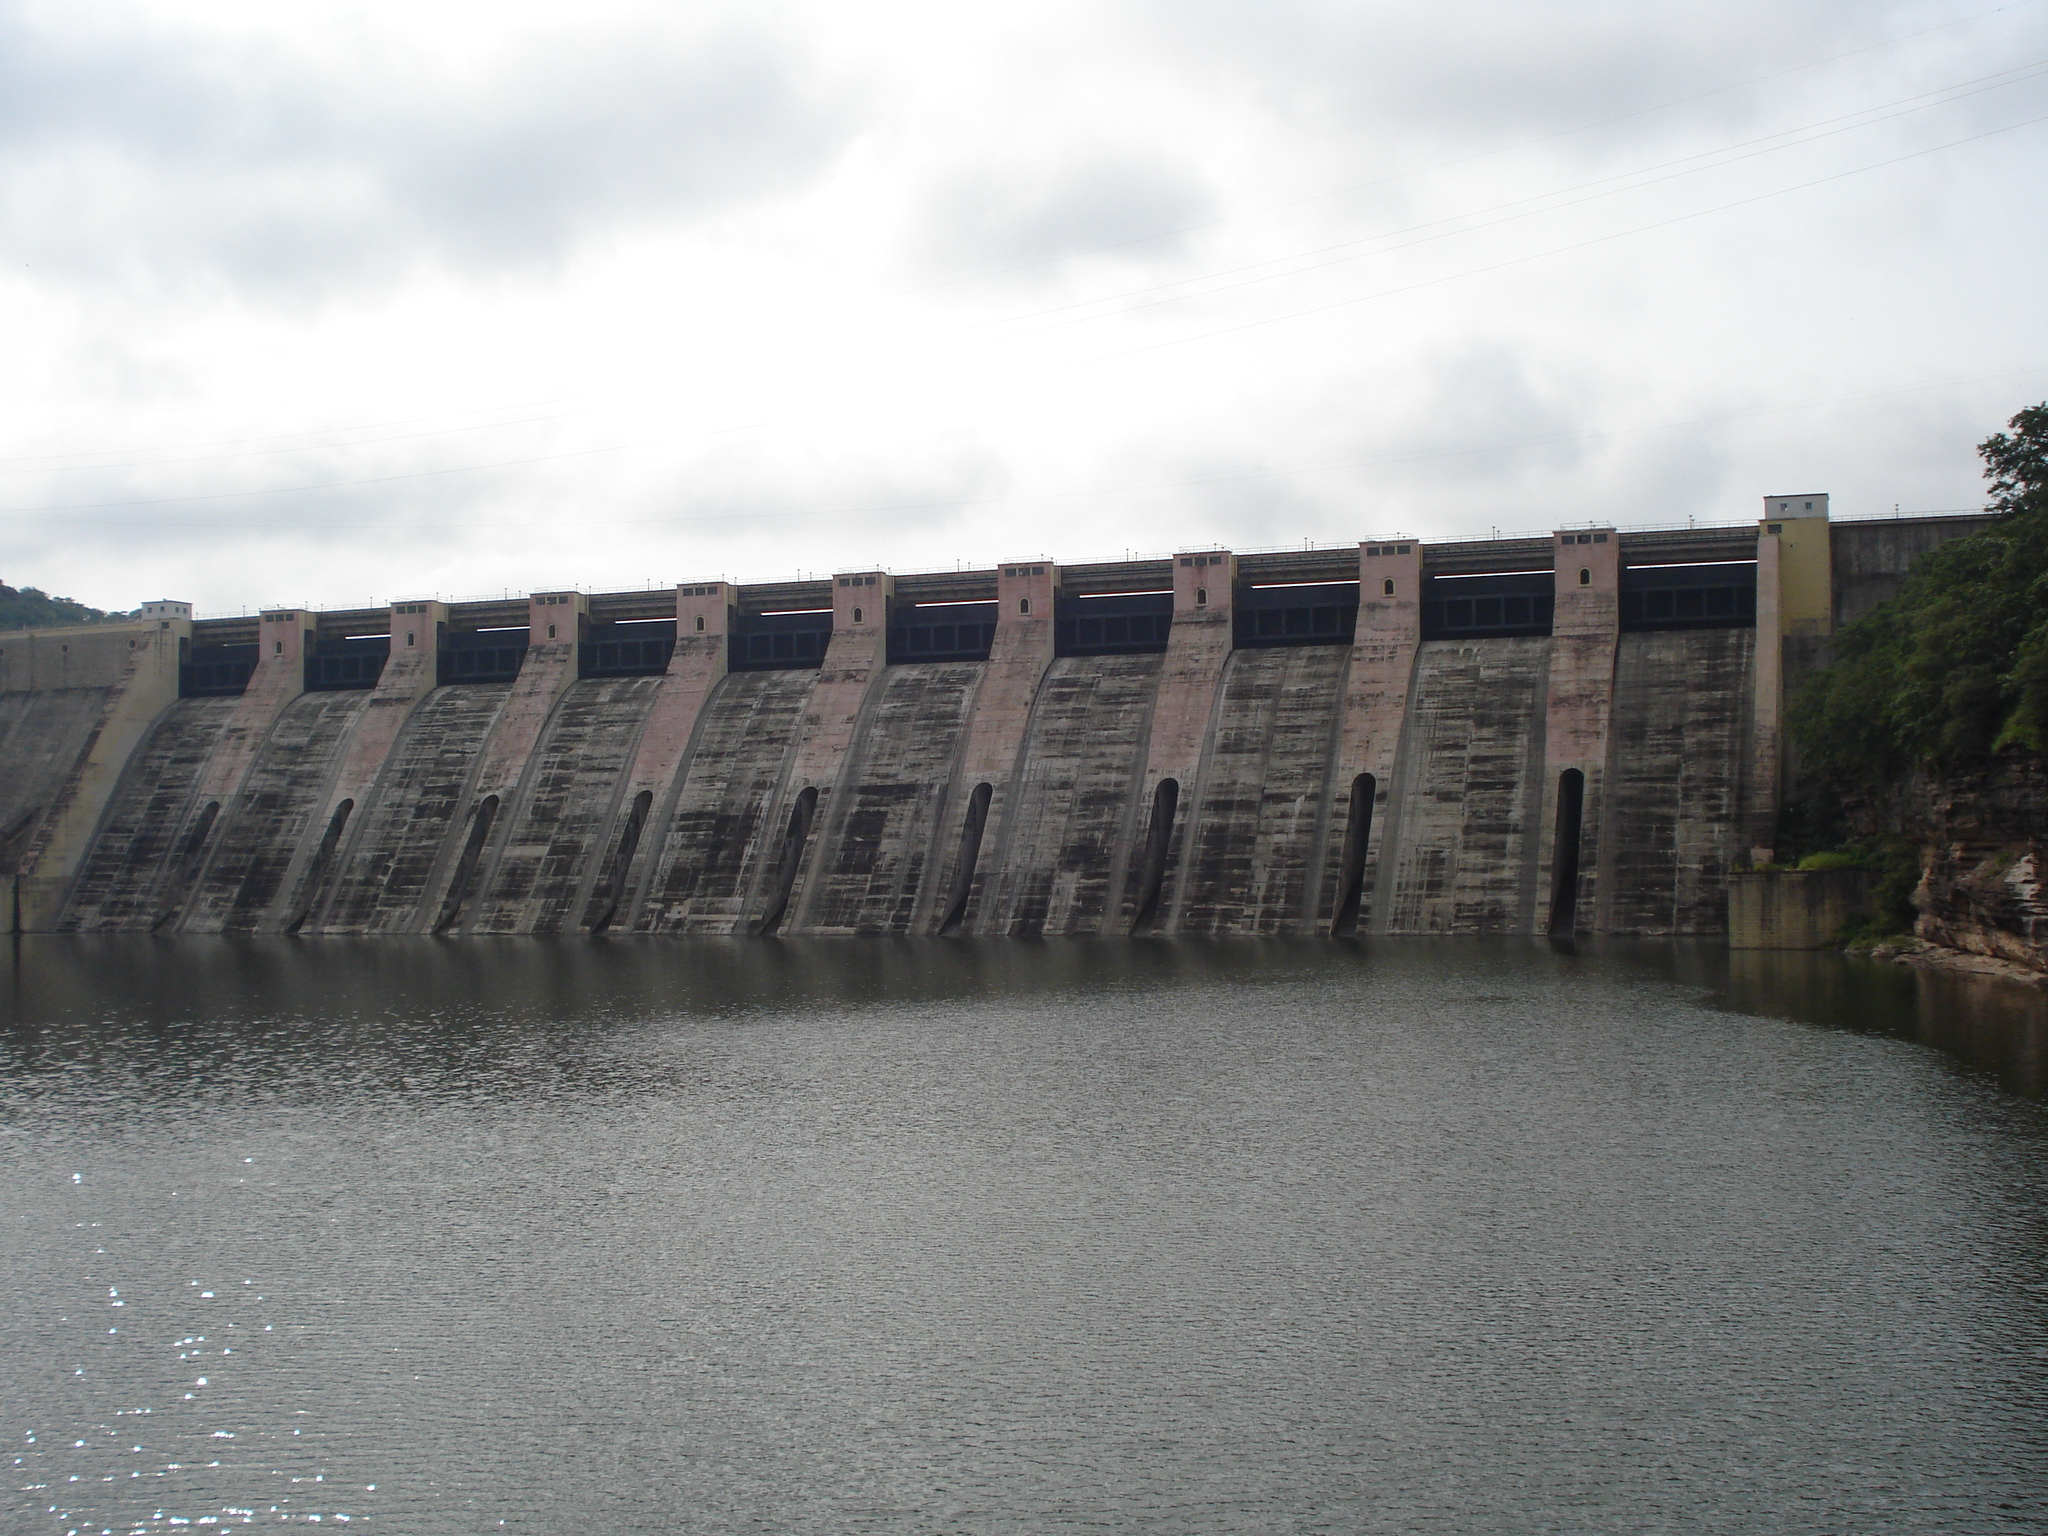 File:Gandhi Sagar Dam.JPG - Wikipedia, the free encyclopedia